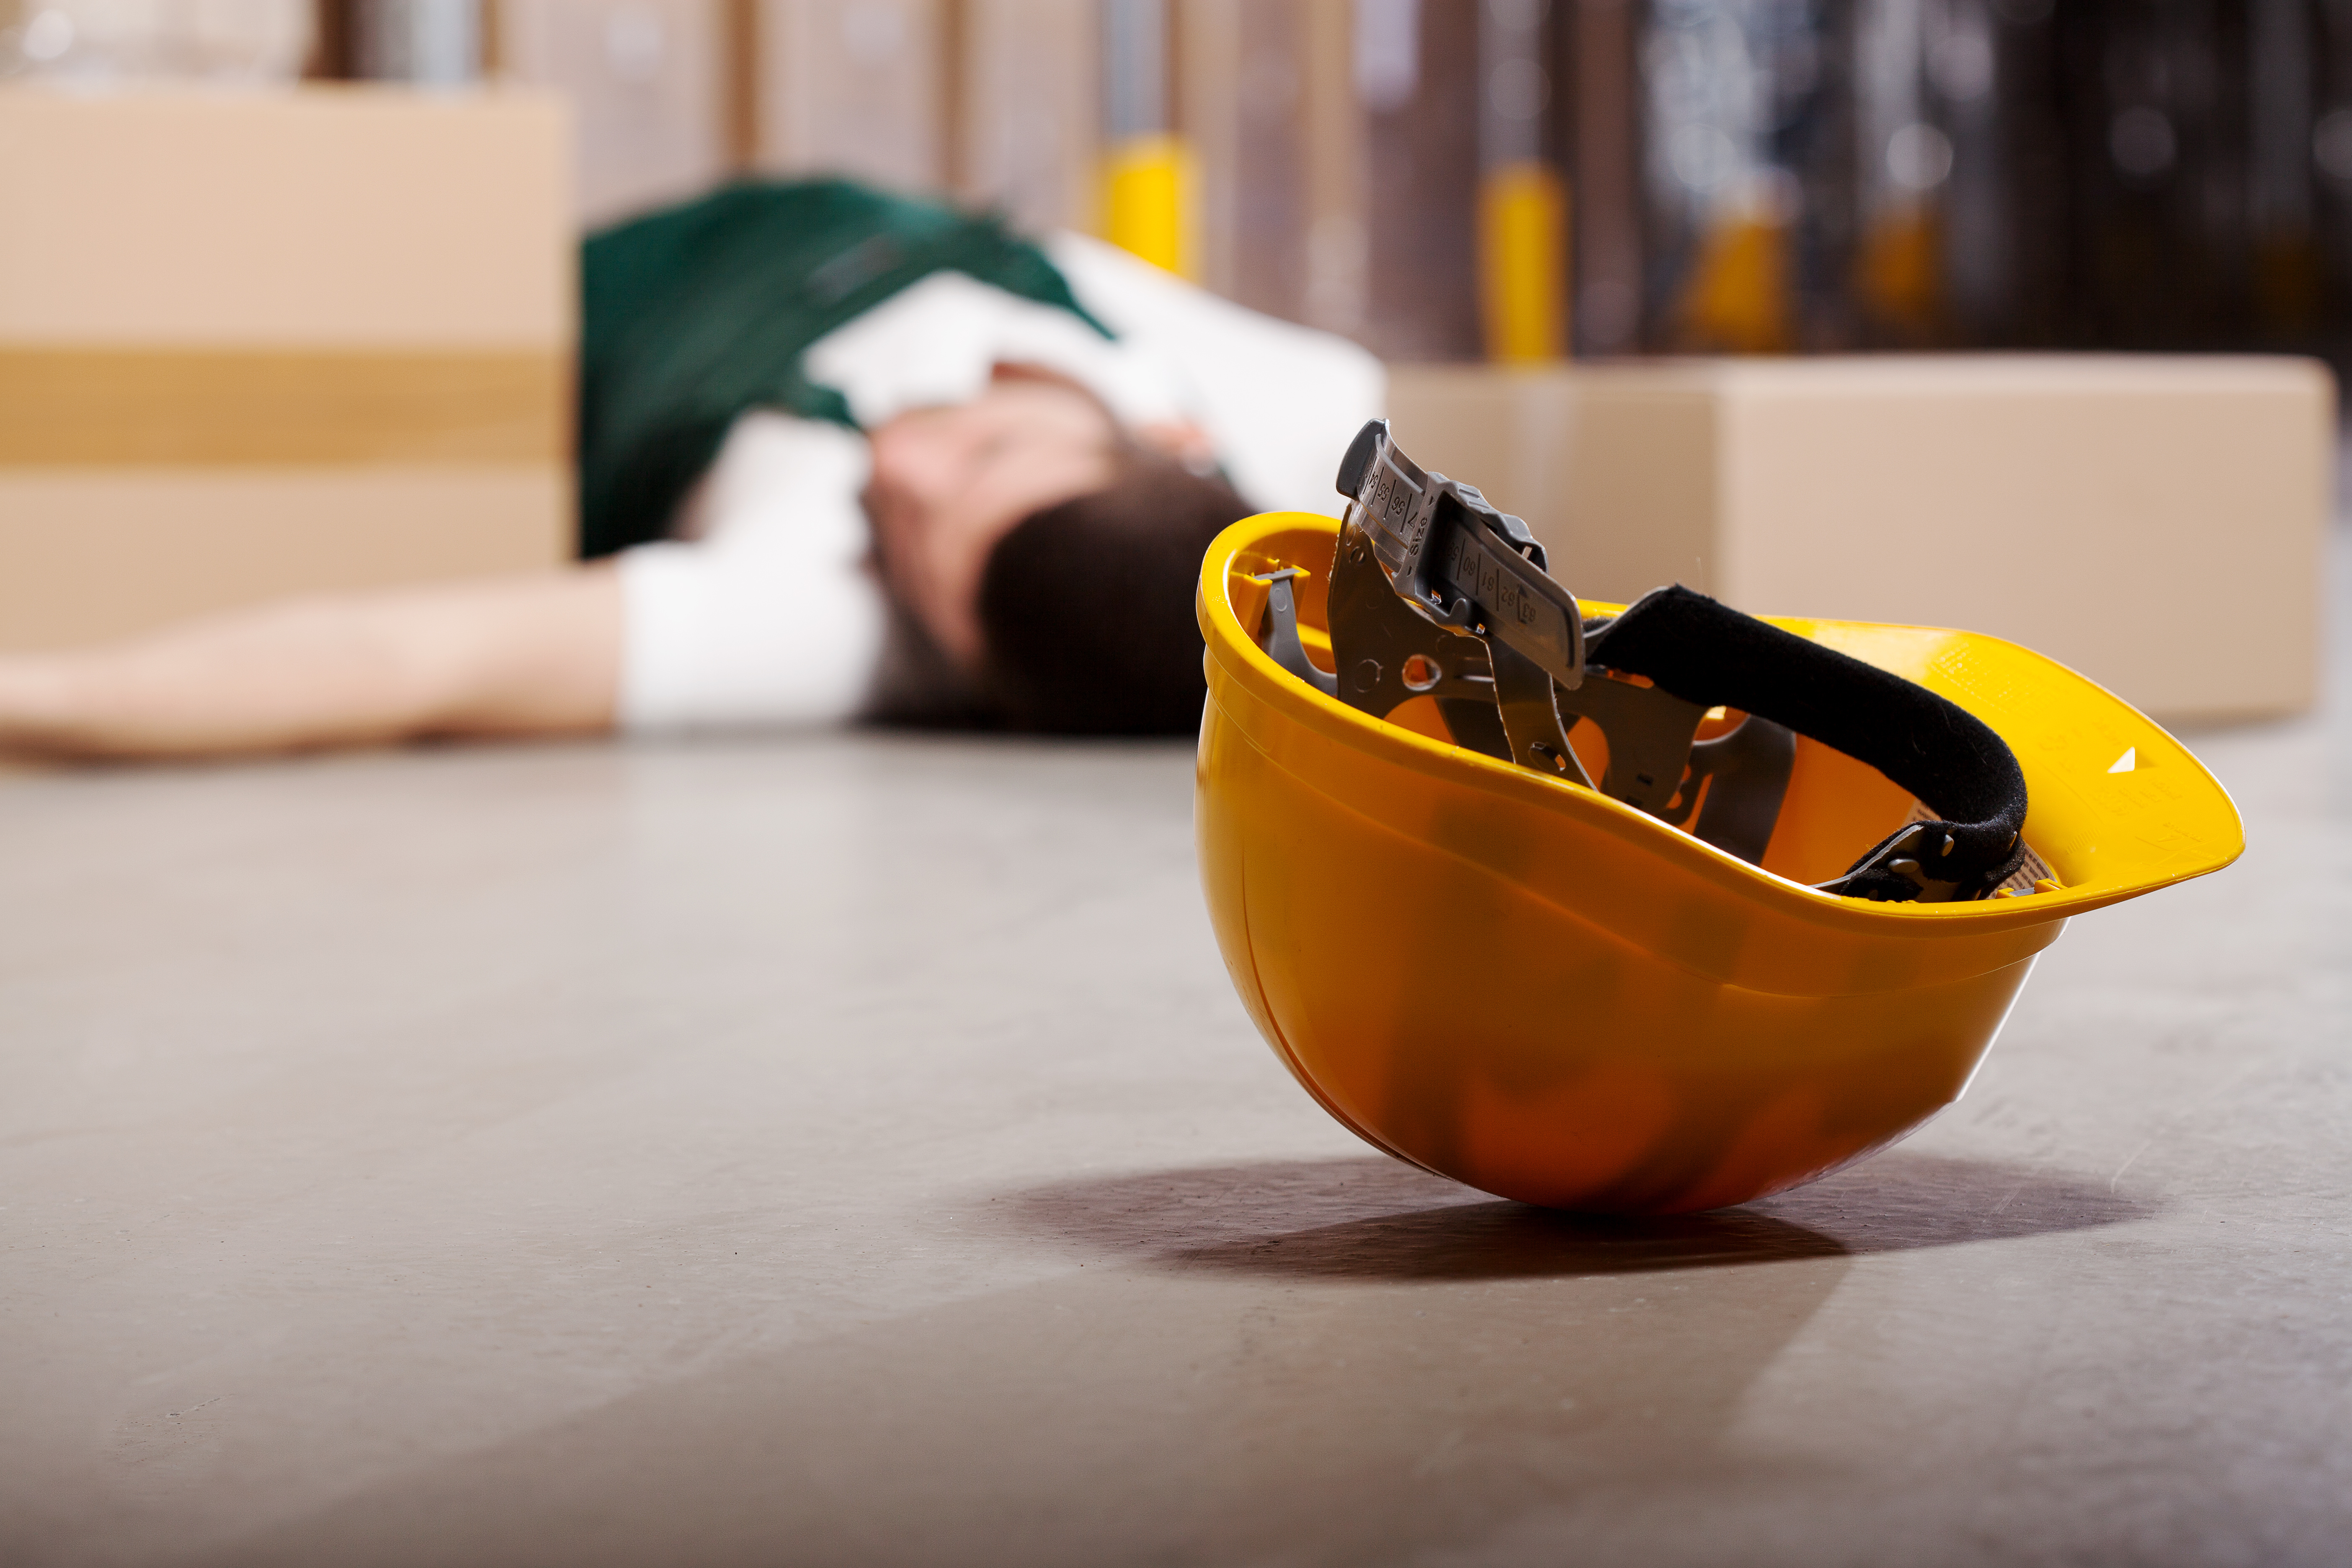 Dangerous accident in warehouse during work - wounded worker